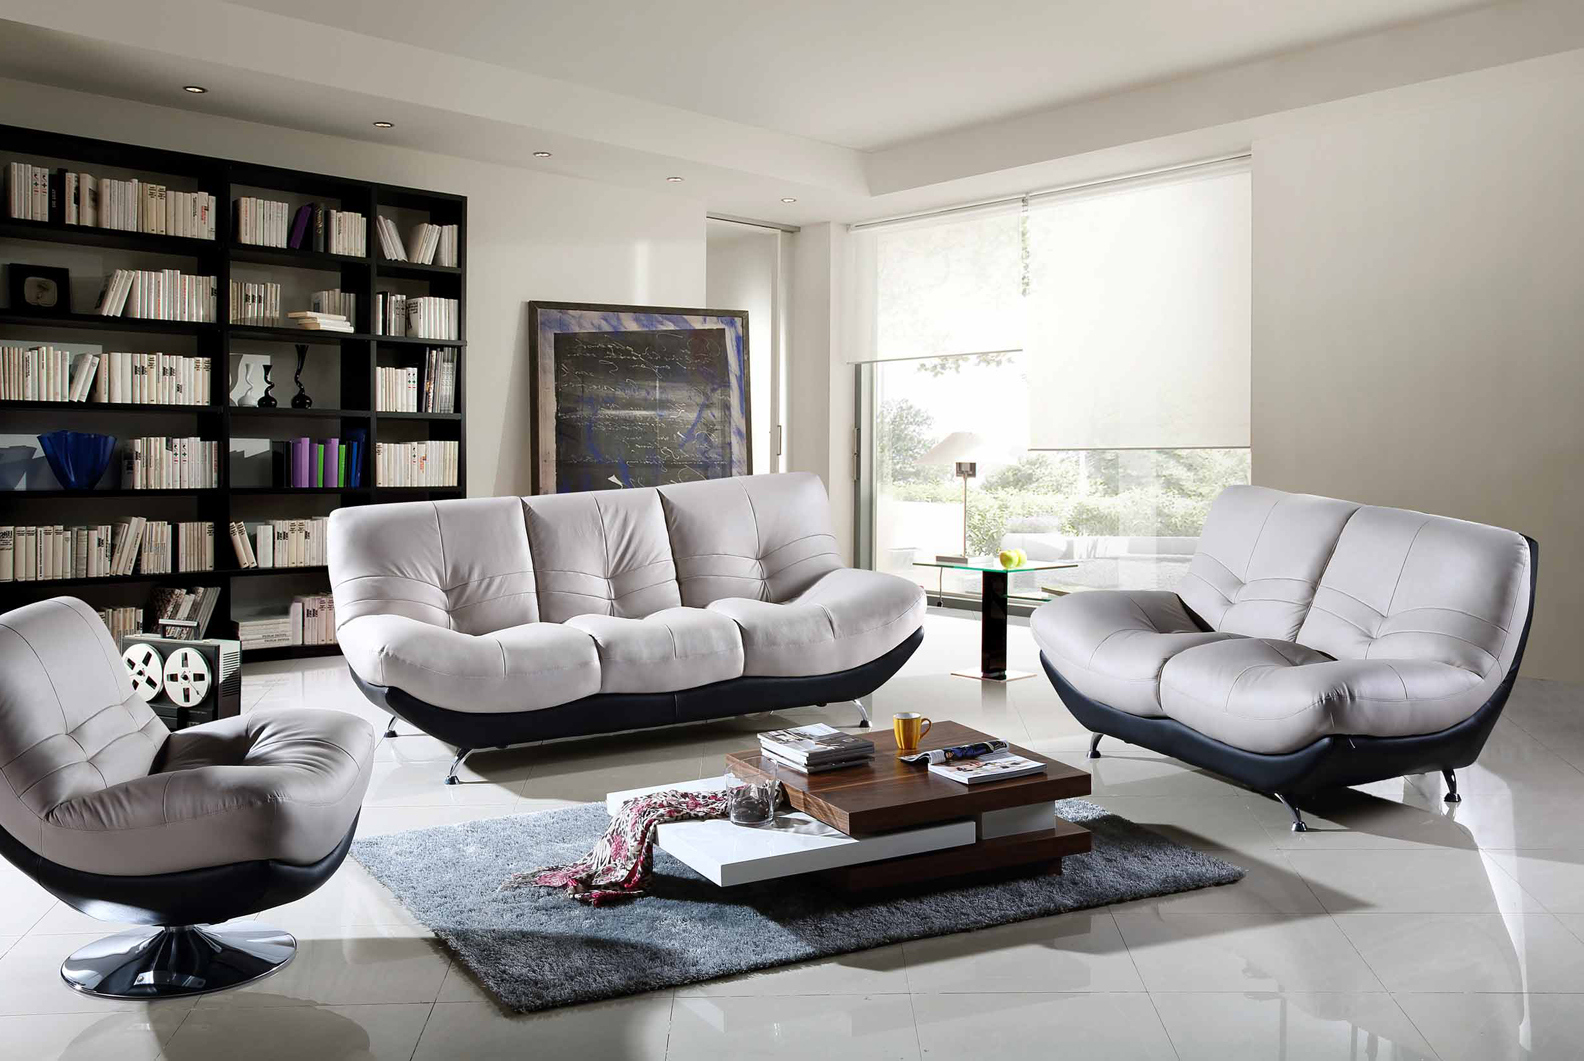 awesome black white modern couch living room sets arrangements ideas